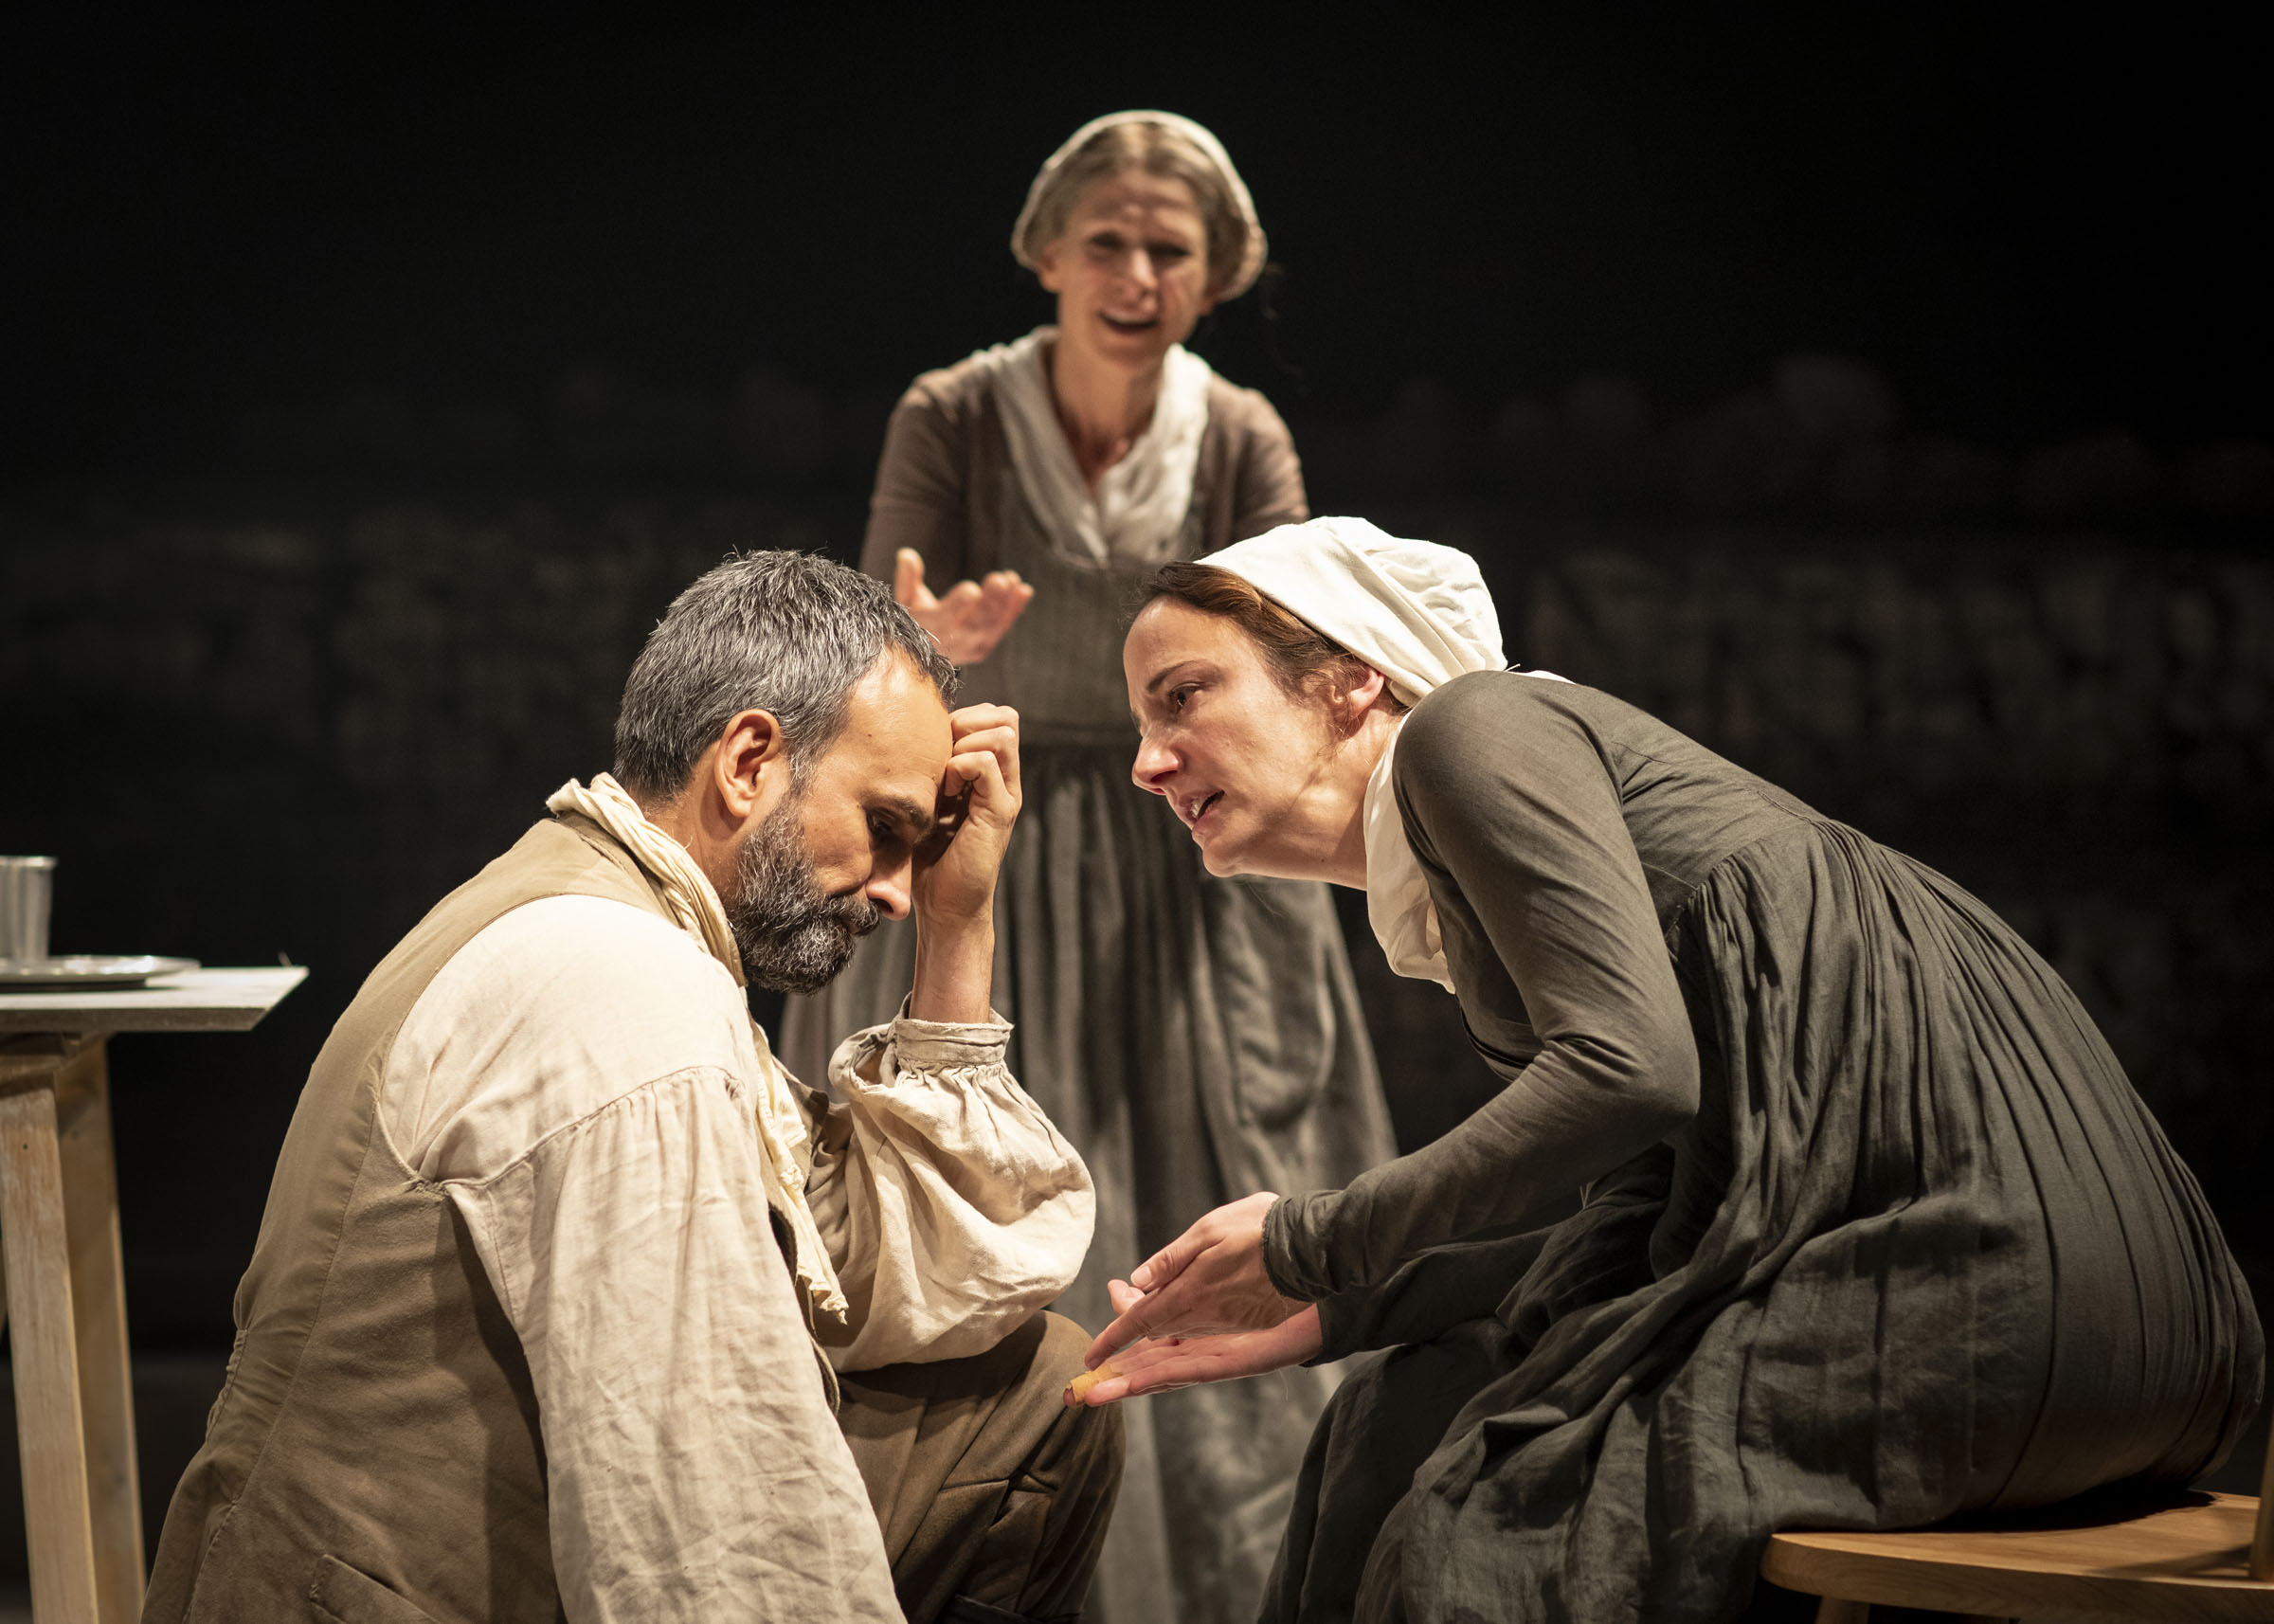 Gerald Kyd (Adam), Jean St Clair (Alice) and Lydia Leonard (Rachel) in 'The Meeting' at Chichester Festival Theatre